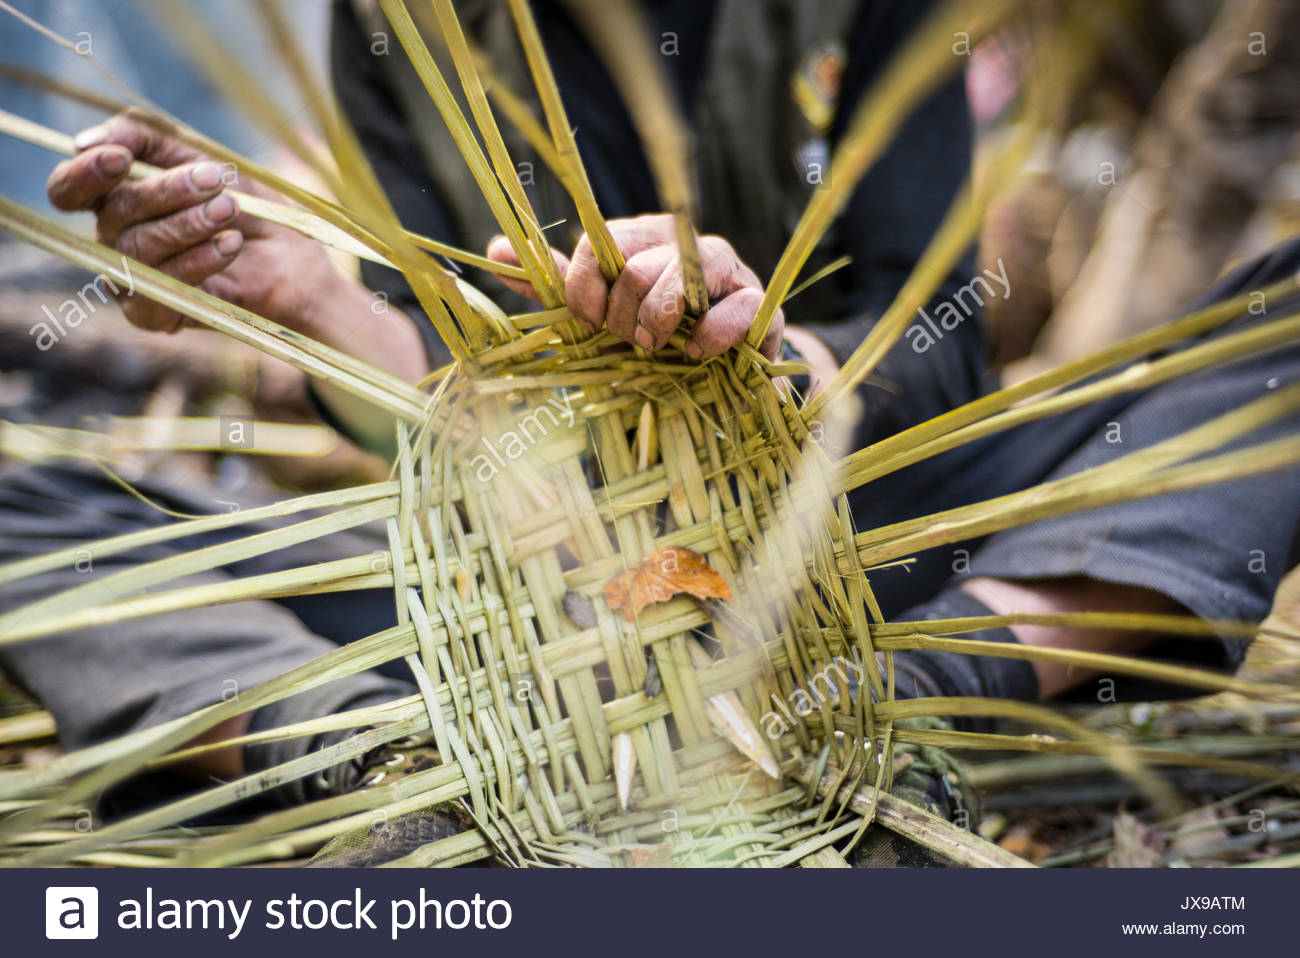 A person weaving a basket out of reeds and grasses. - Stock Image